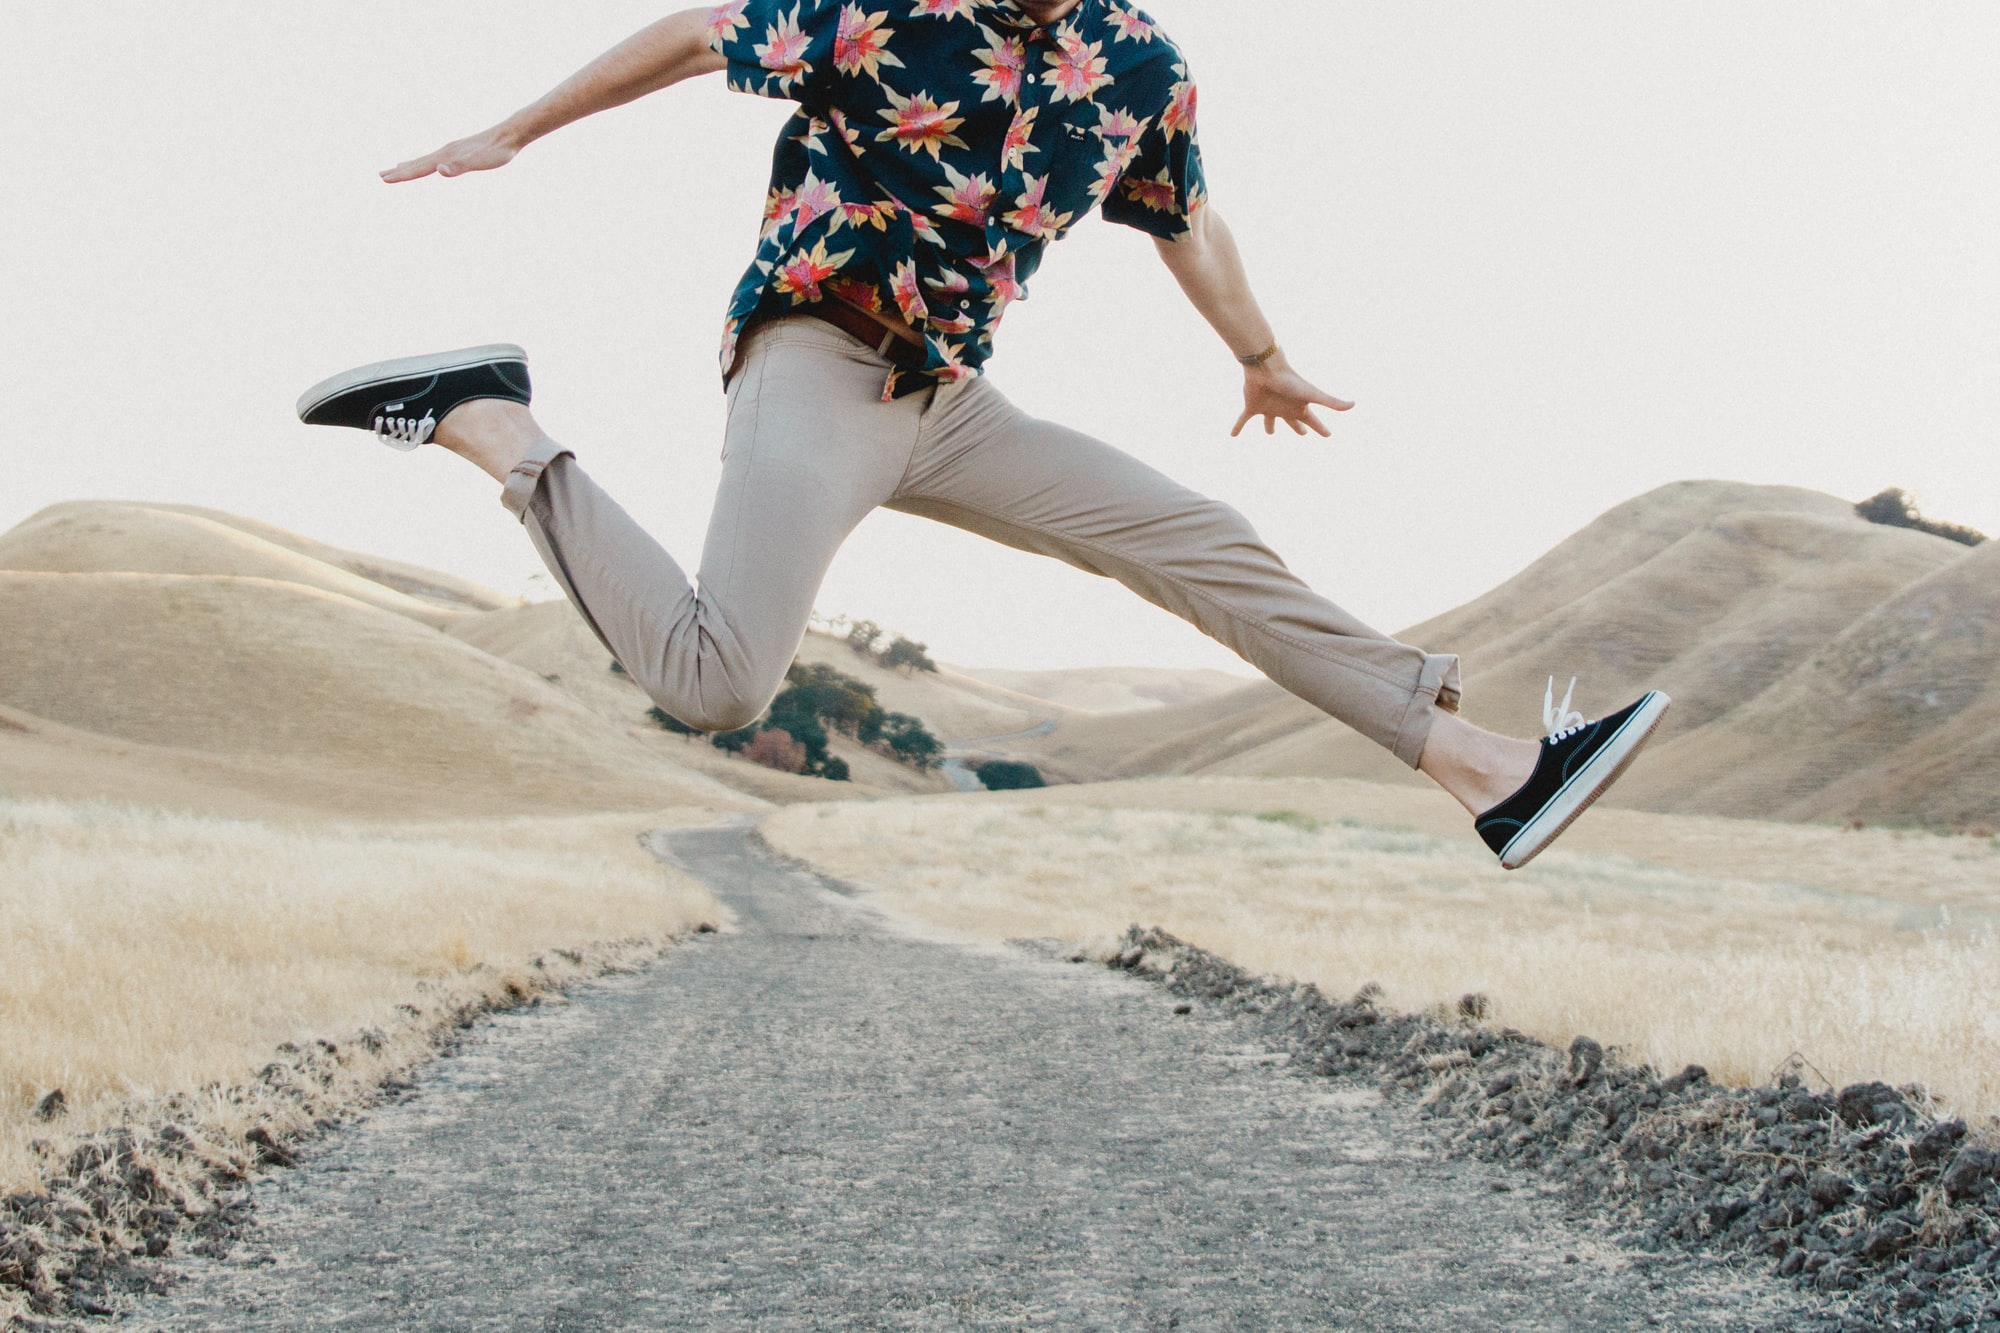 How to motivate salespeople for success